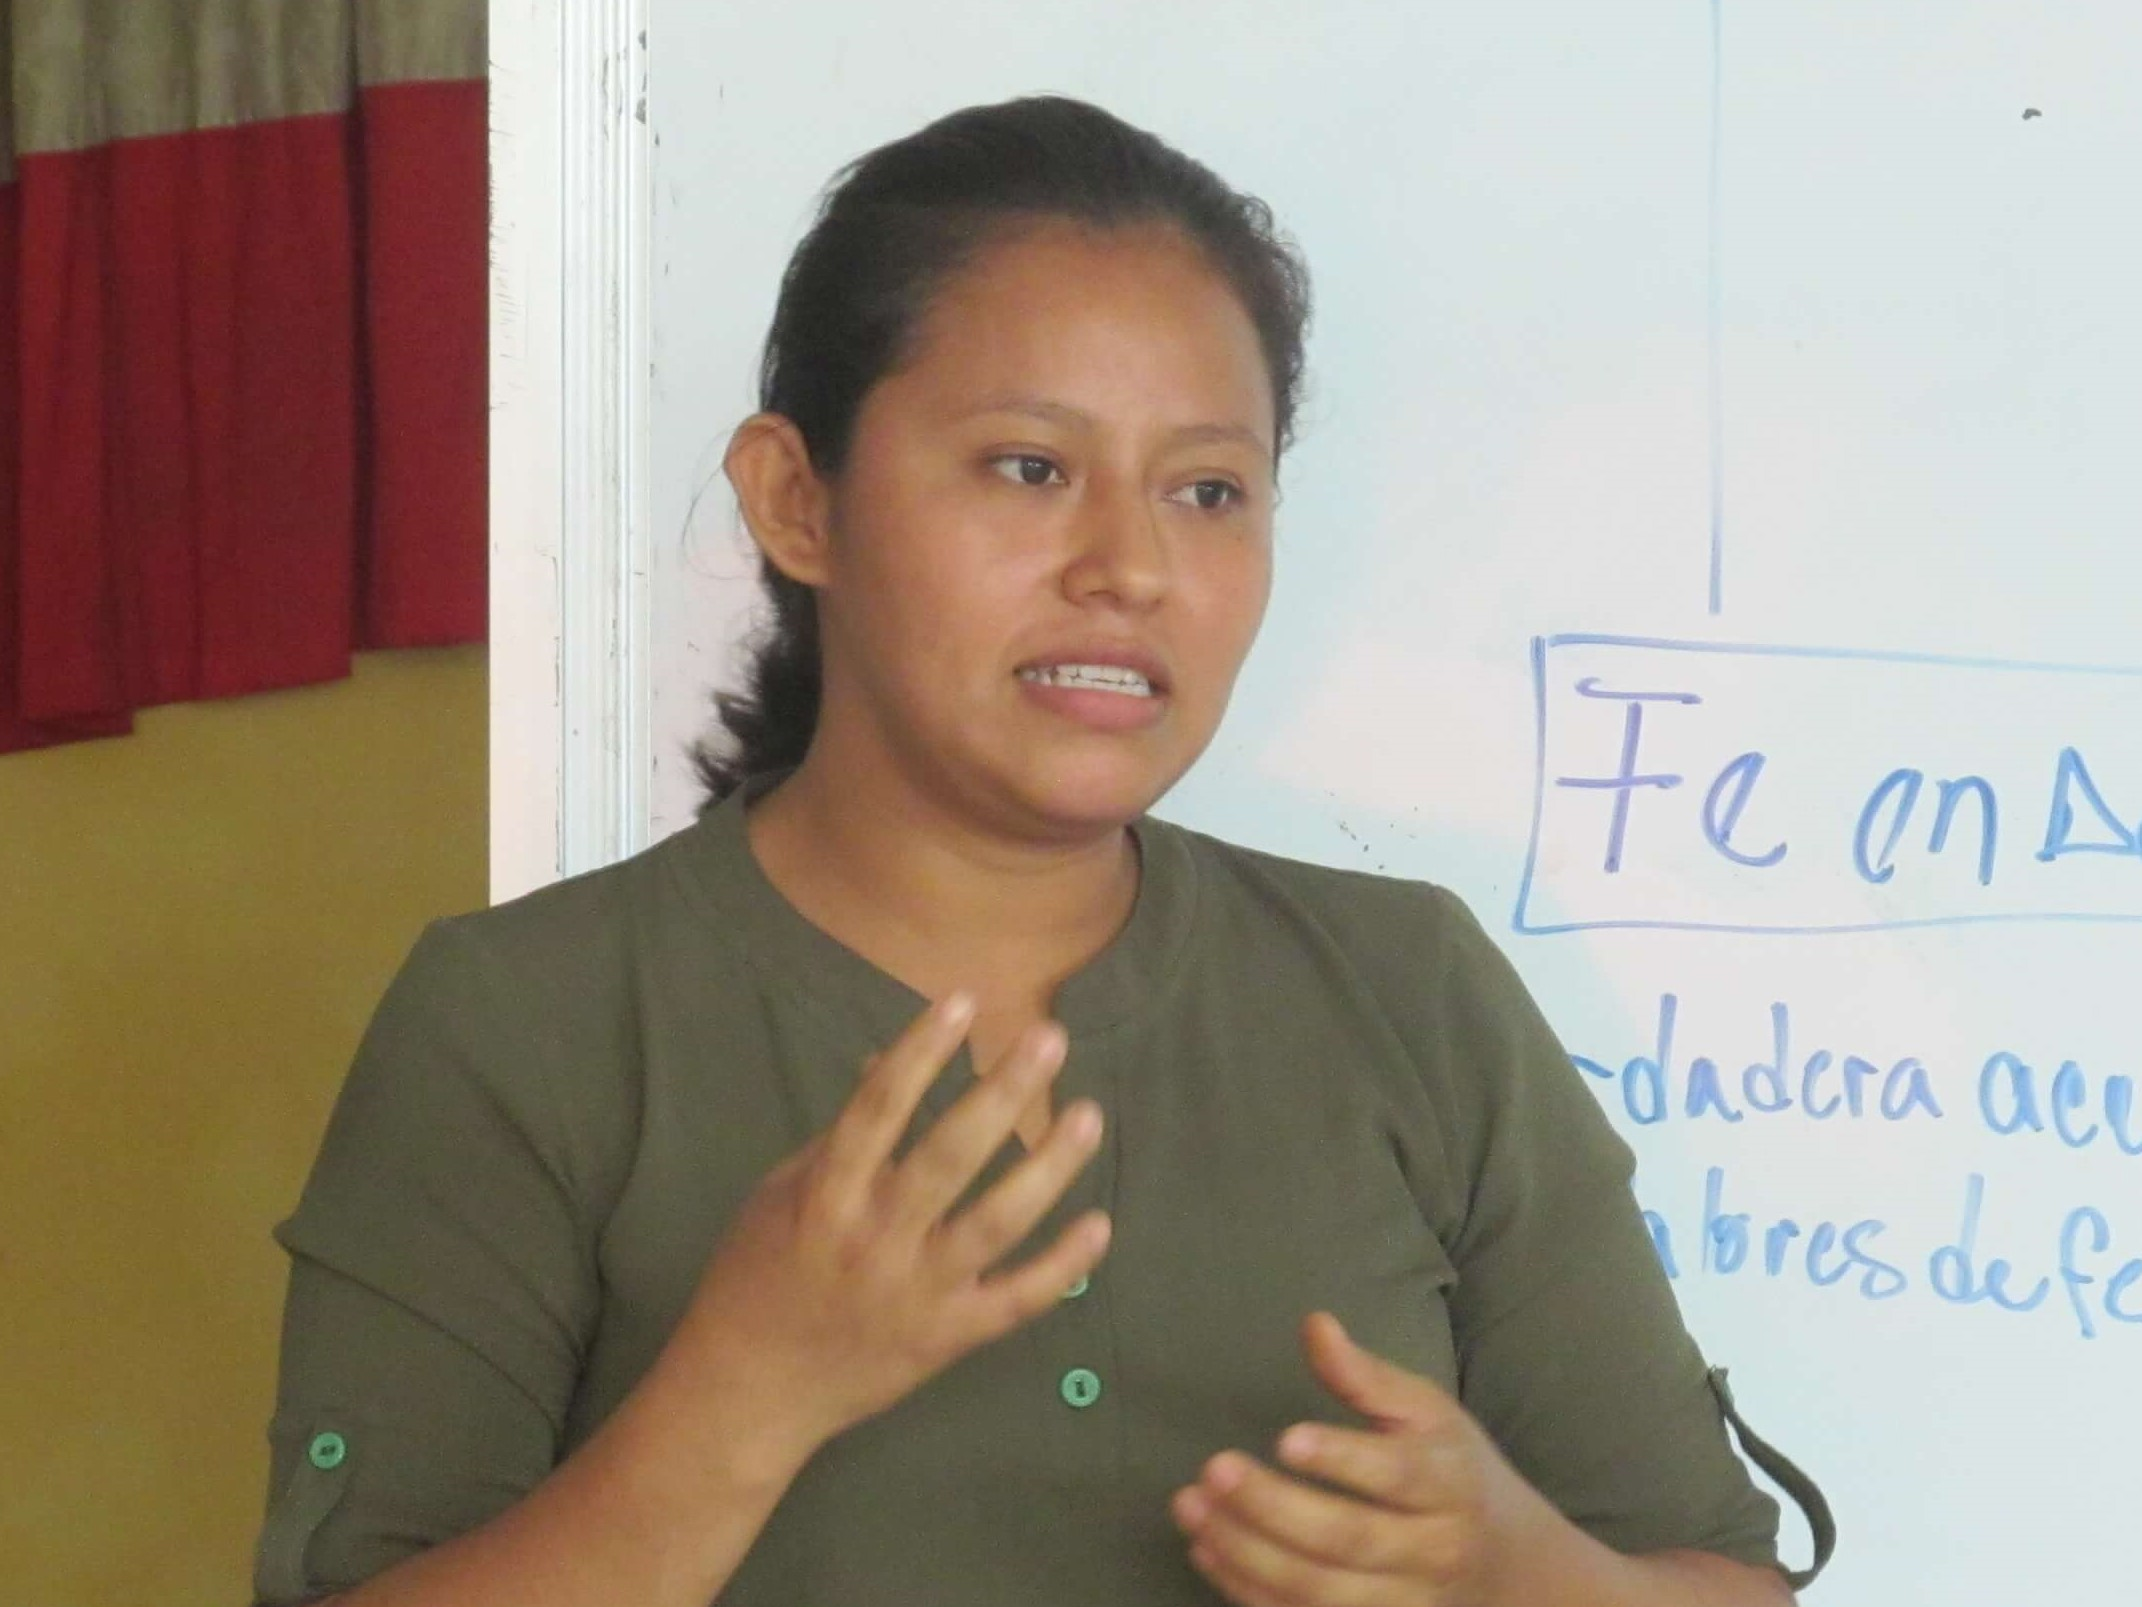 El Salvador: COFOA Will Grow With Your Support